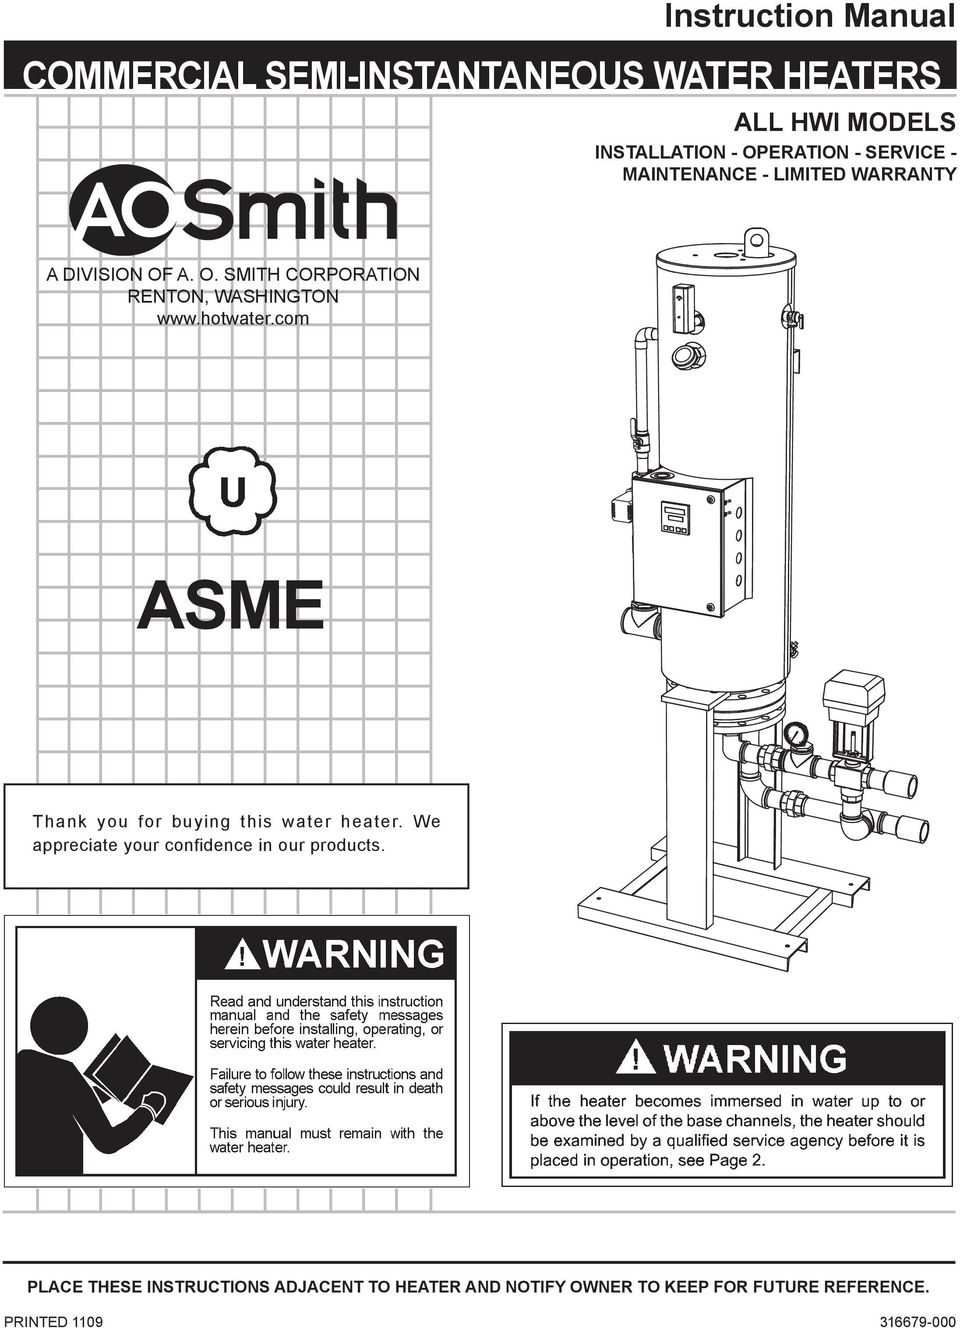 medium resolution of hotwater com asme thank you for buying this water heater we appreciate your confidence